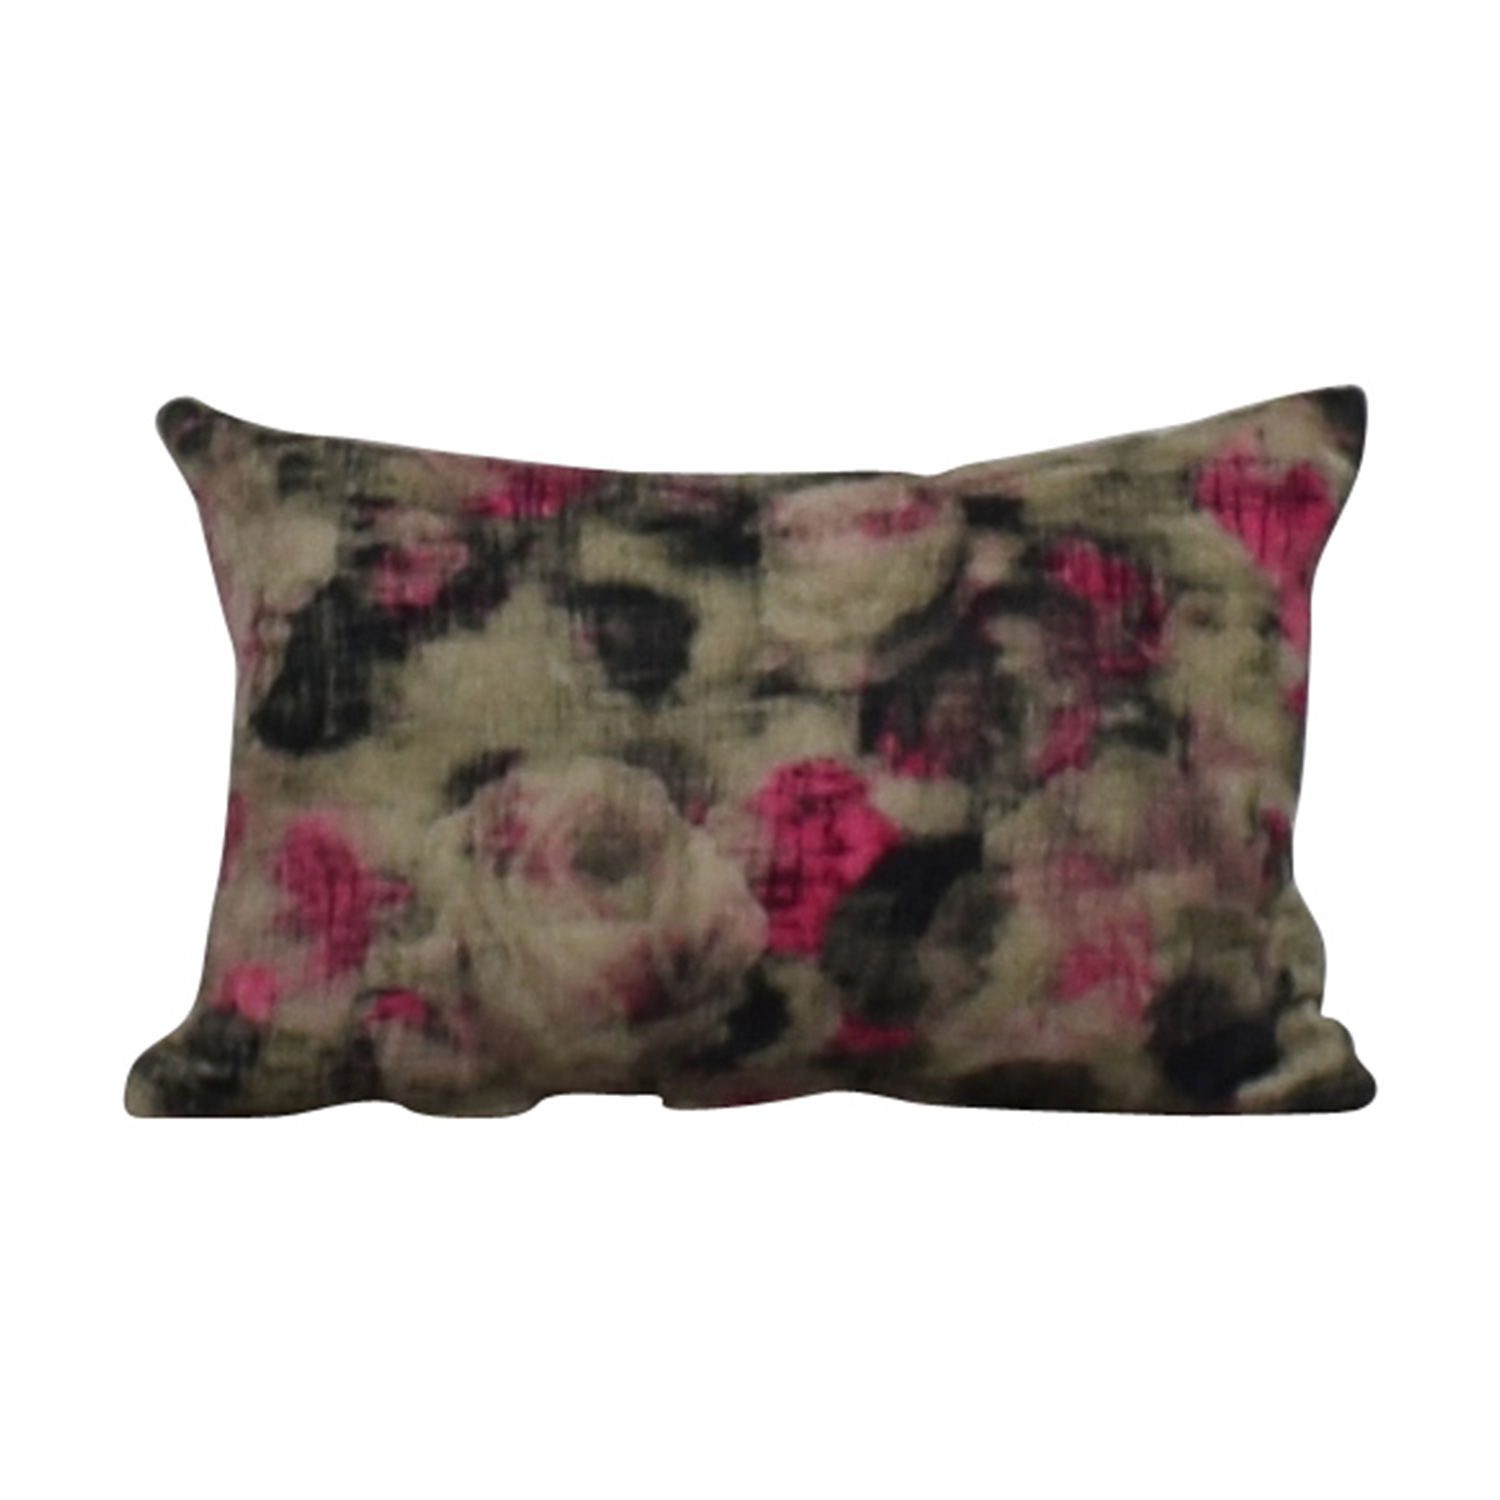 West Elm Splatter Pillow / Decor